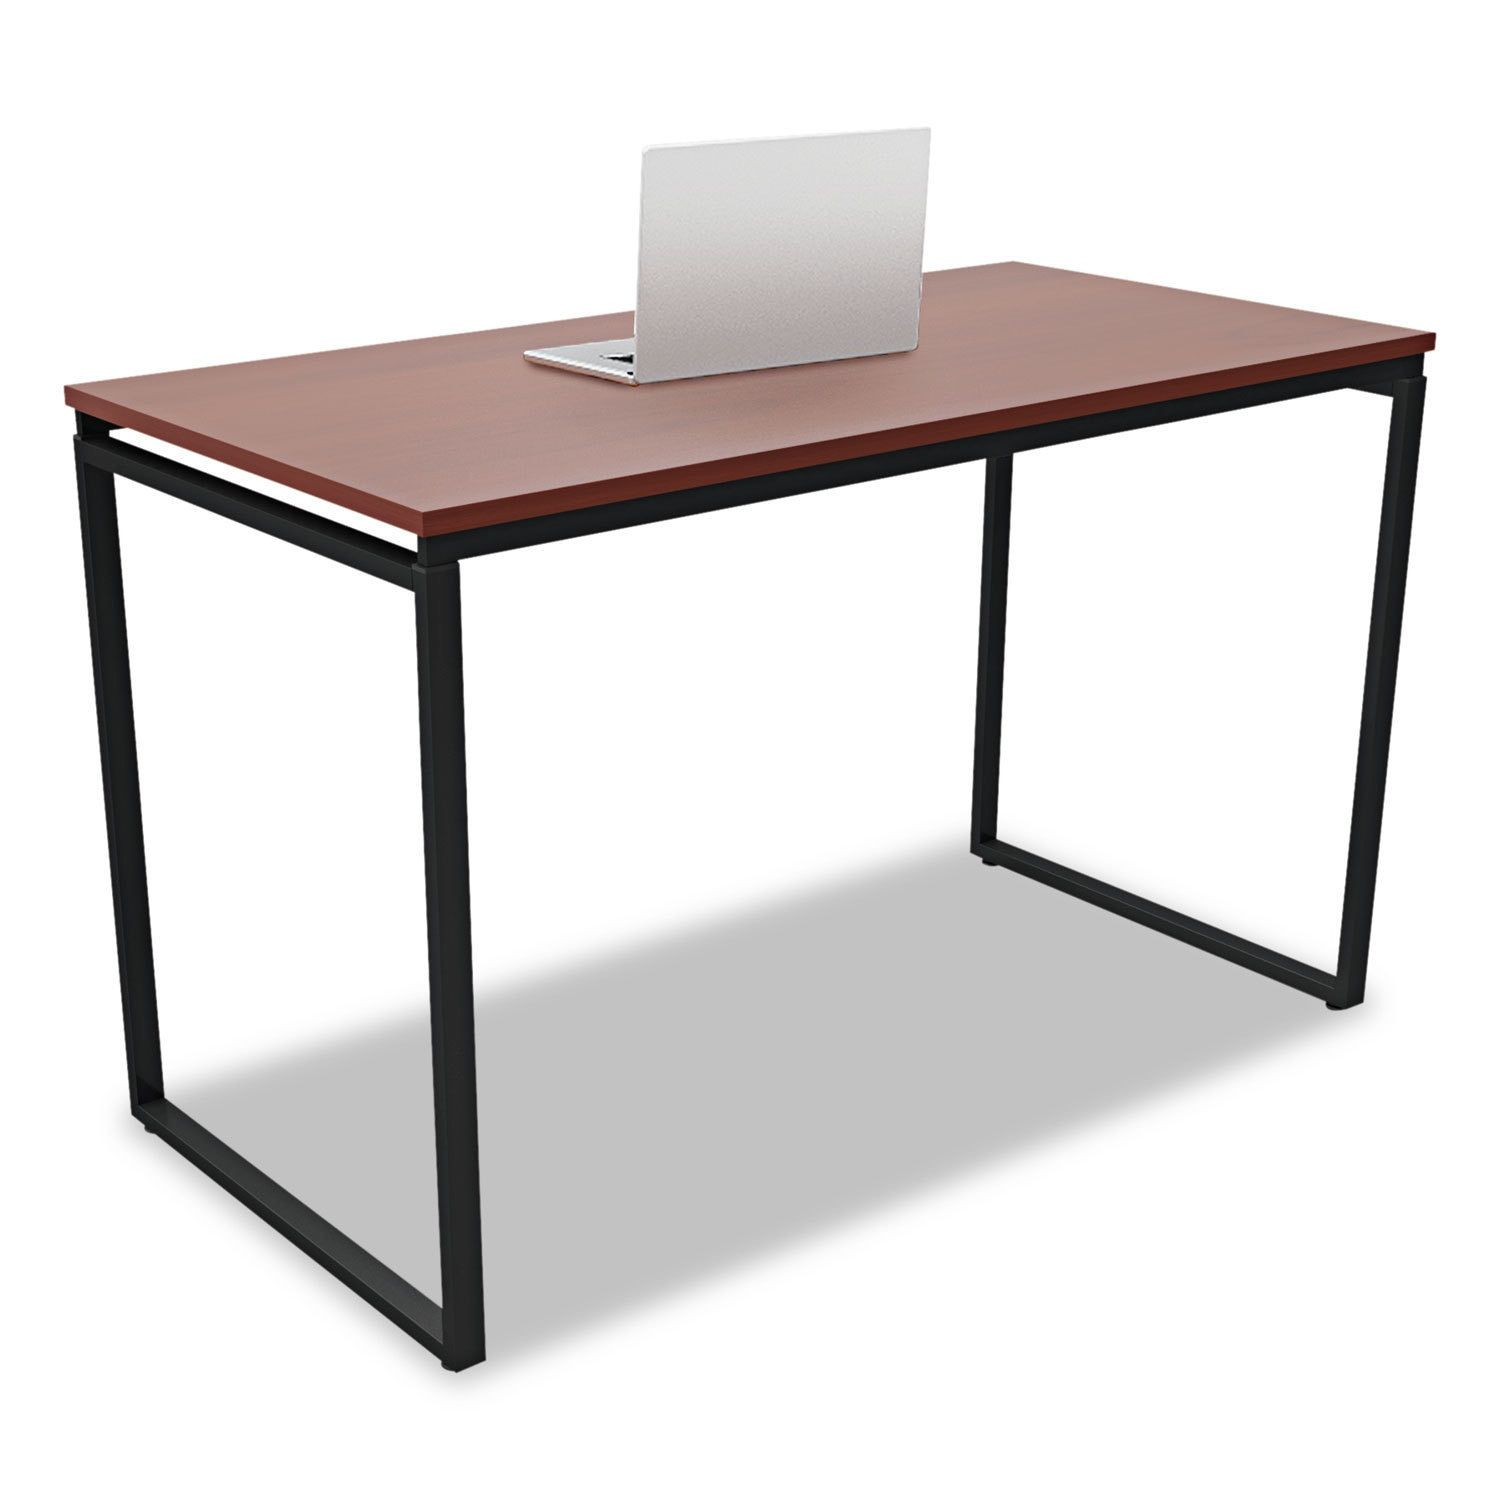 Linea Italia Seven Series Rectangle Desk 47 1 4 X 23 5 8 29 2